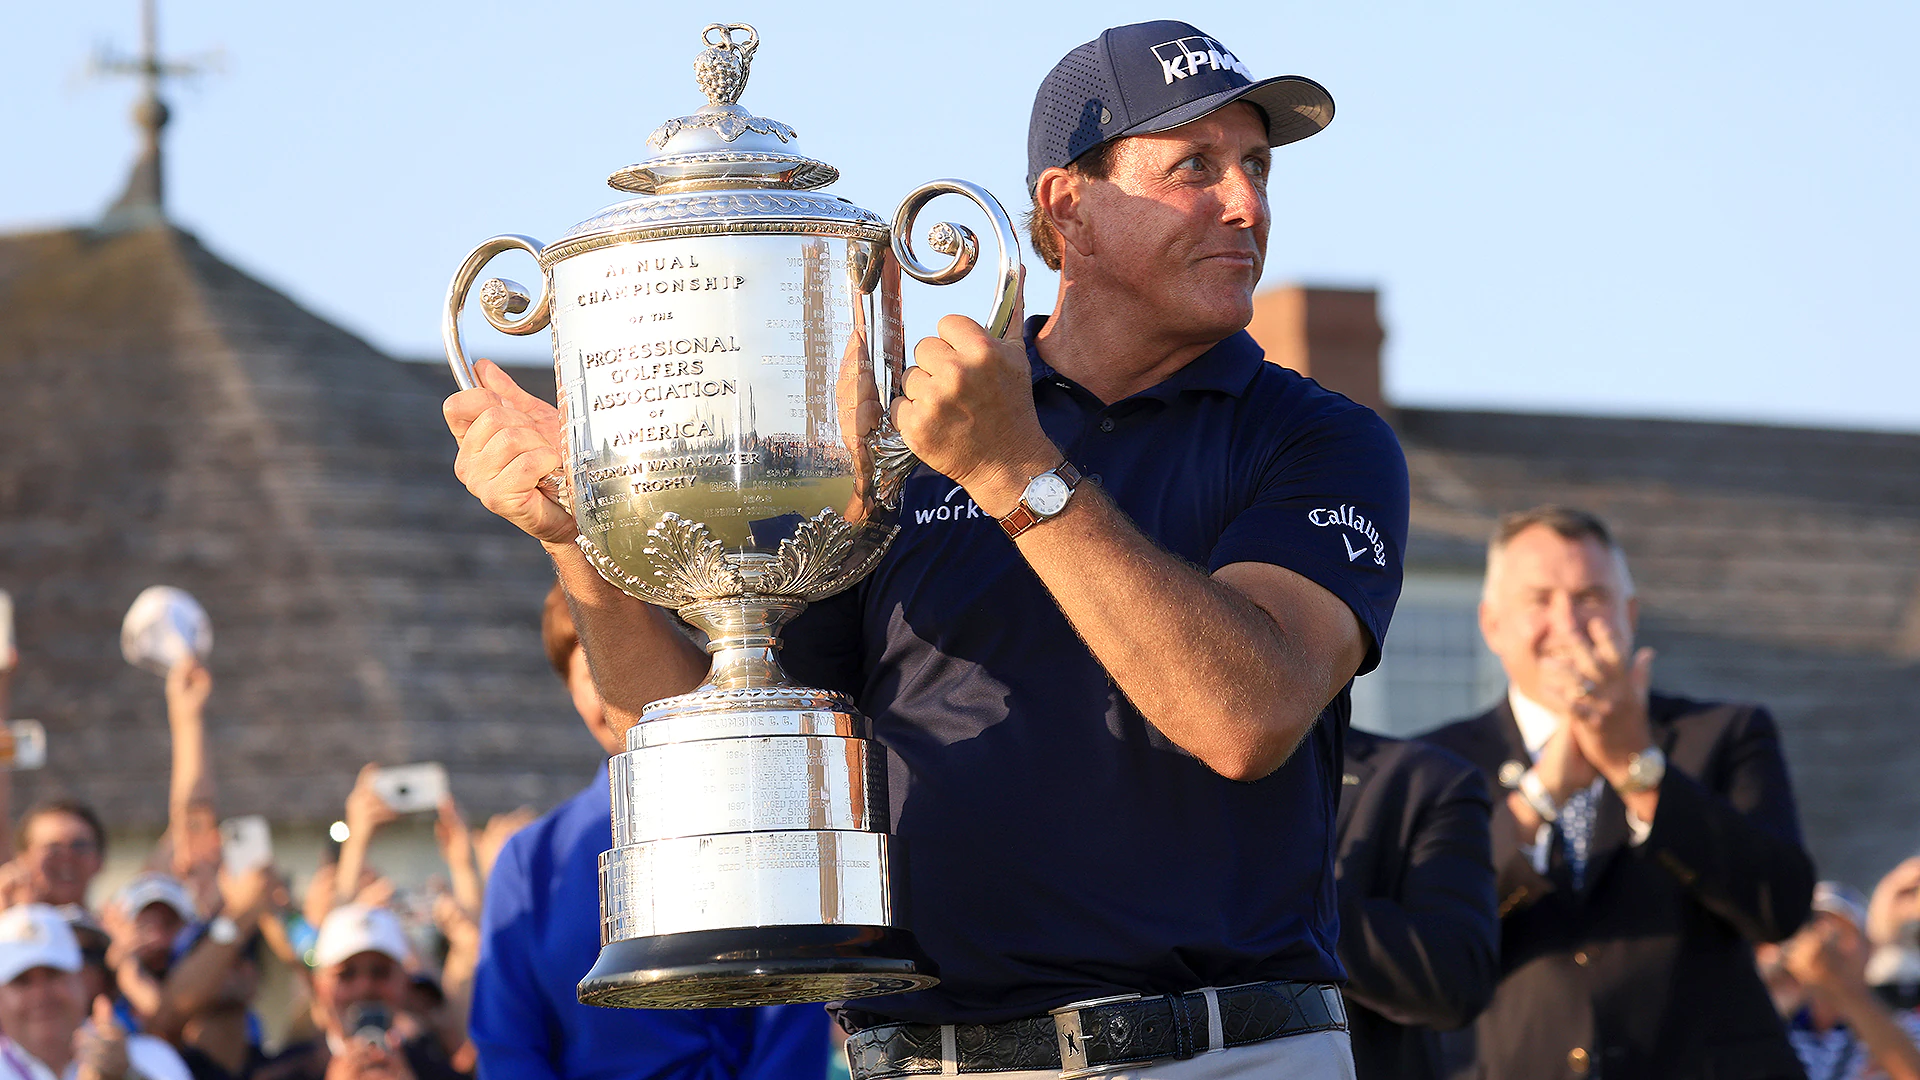 50 year old Phil Mickelson, becomes oldest major winner in history with PGA Championship victory